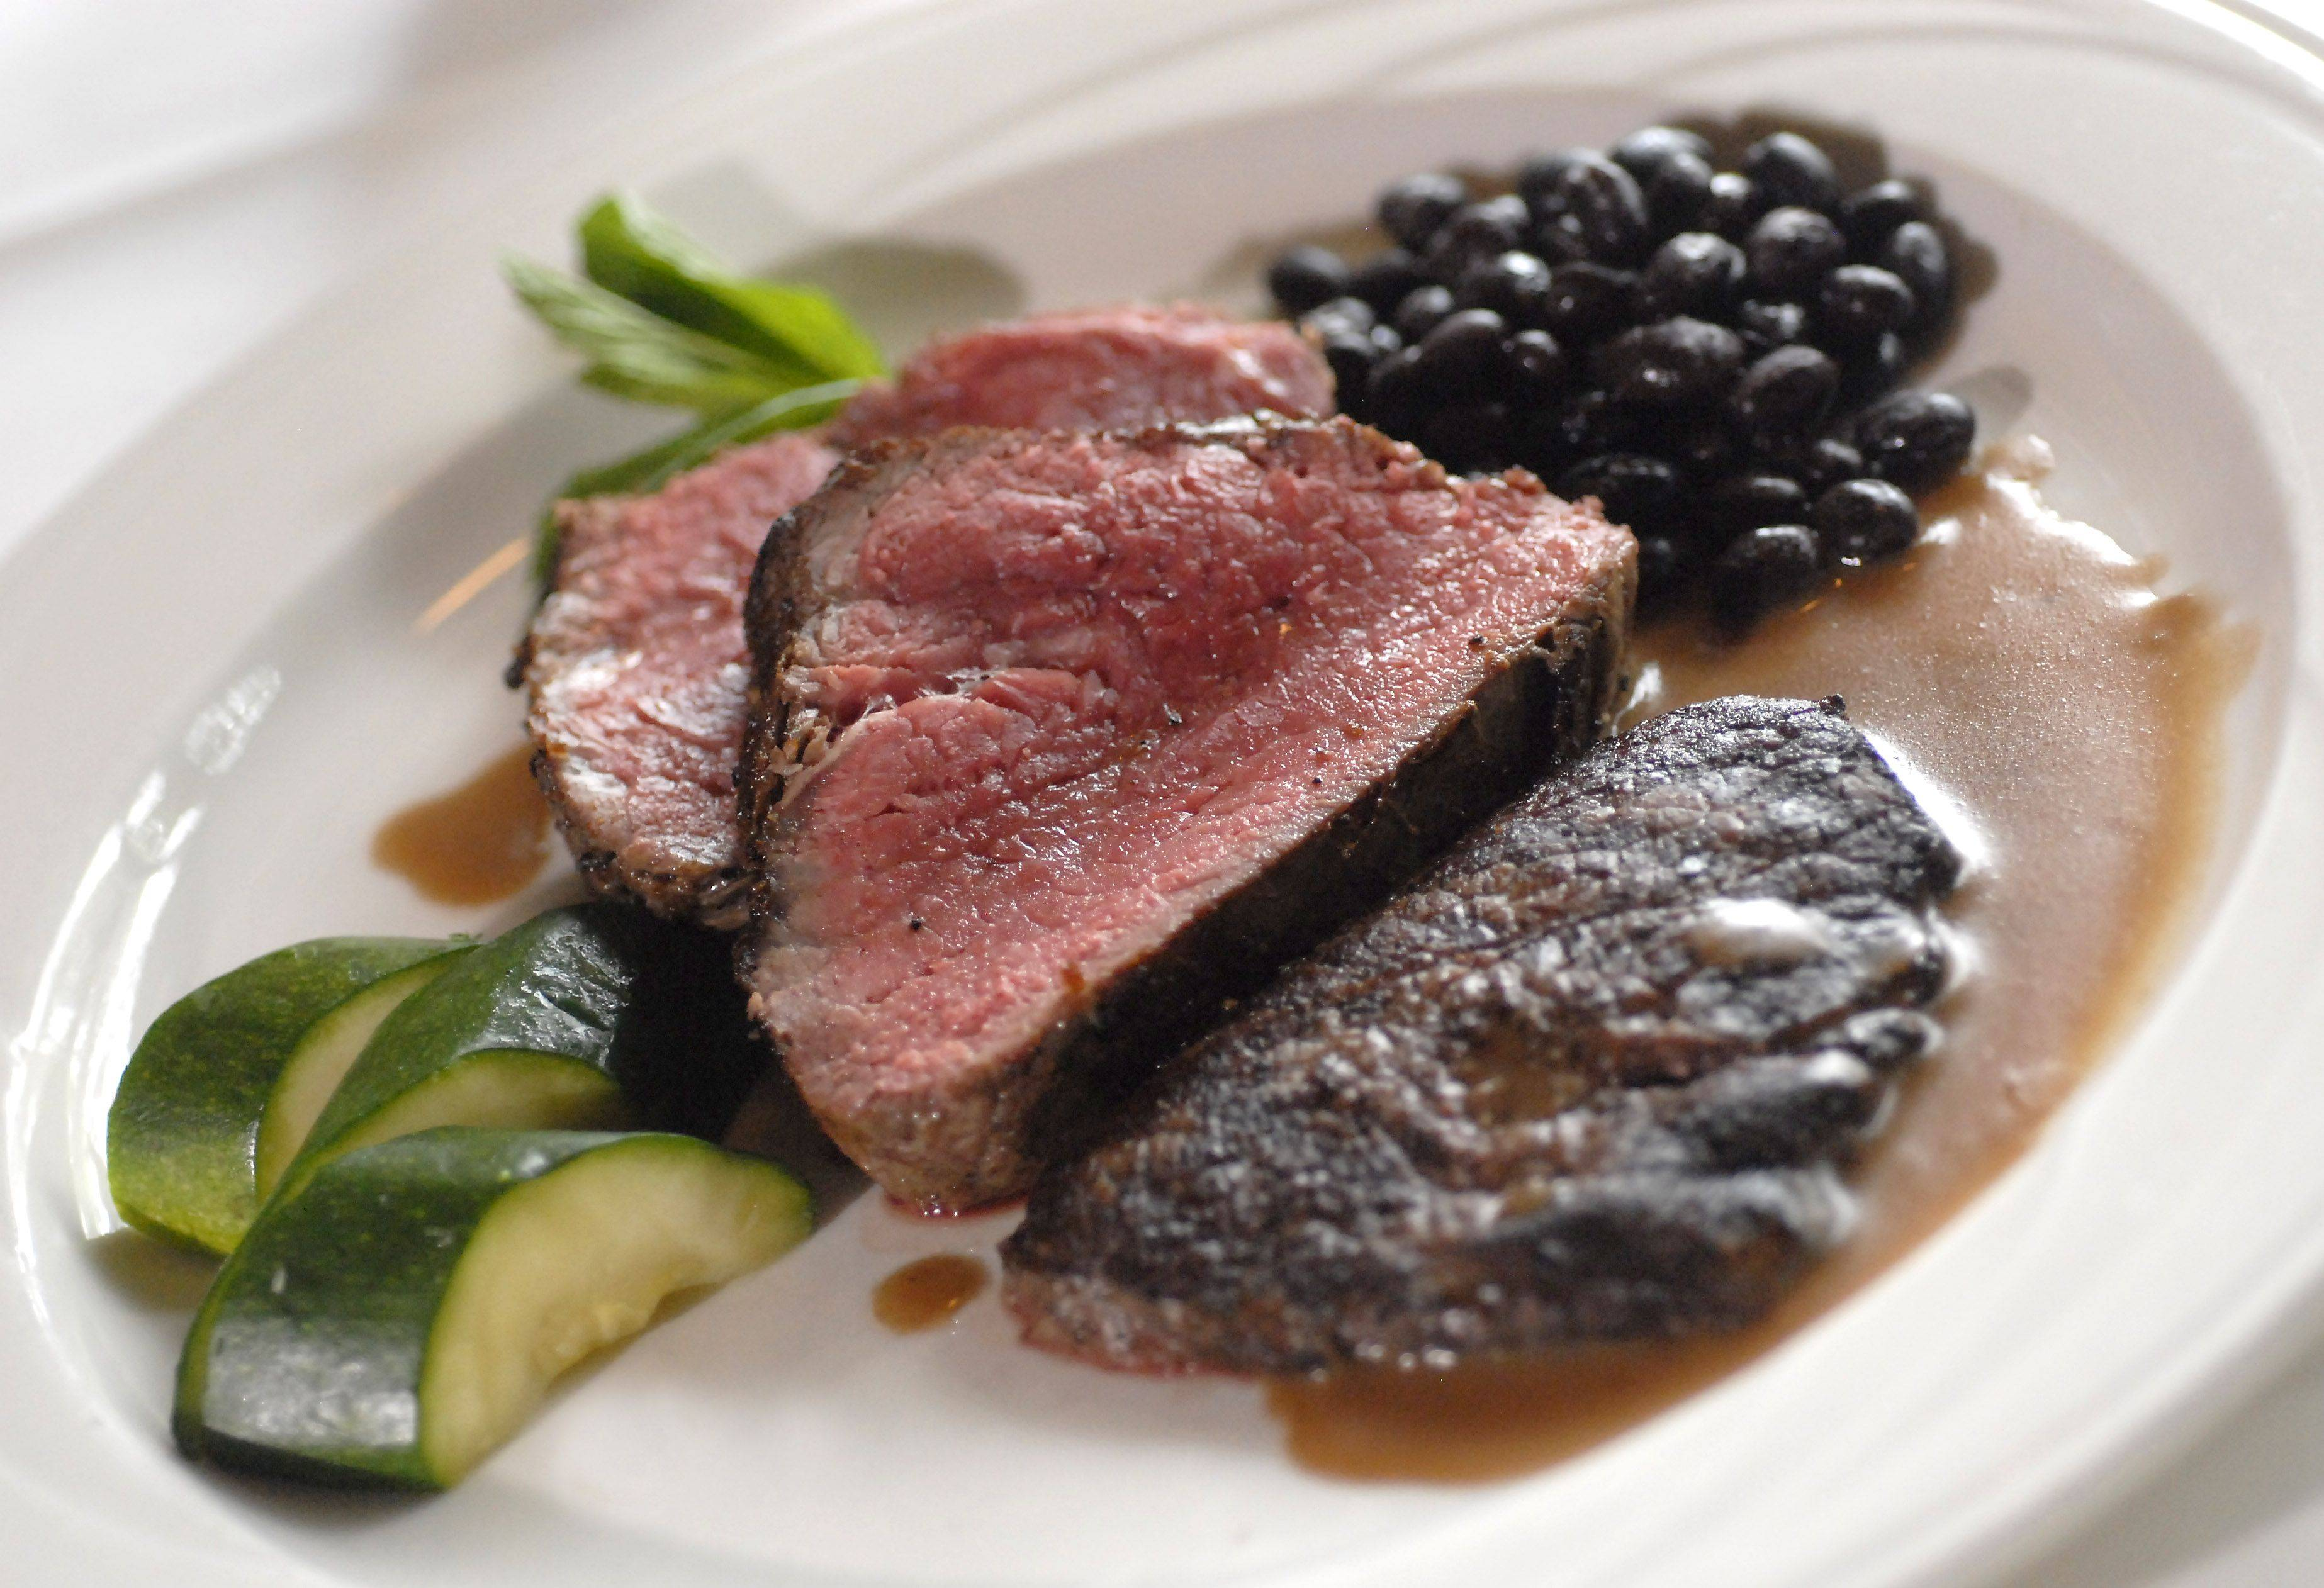 London Broil is among the many classic meat options available at Palm Court in Arlington Heights.